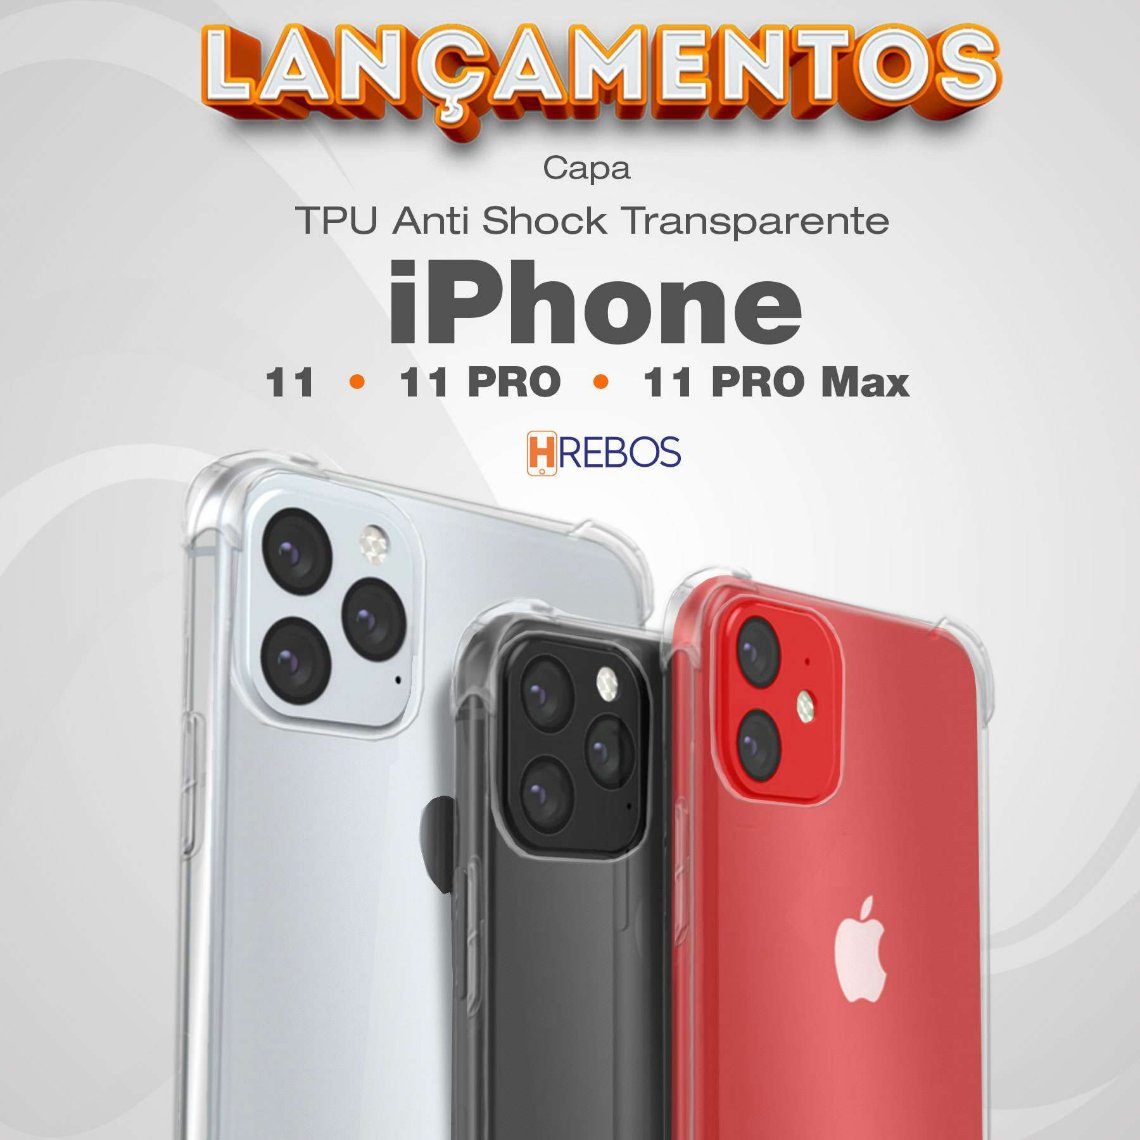 m-banner-iphone11as